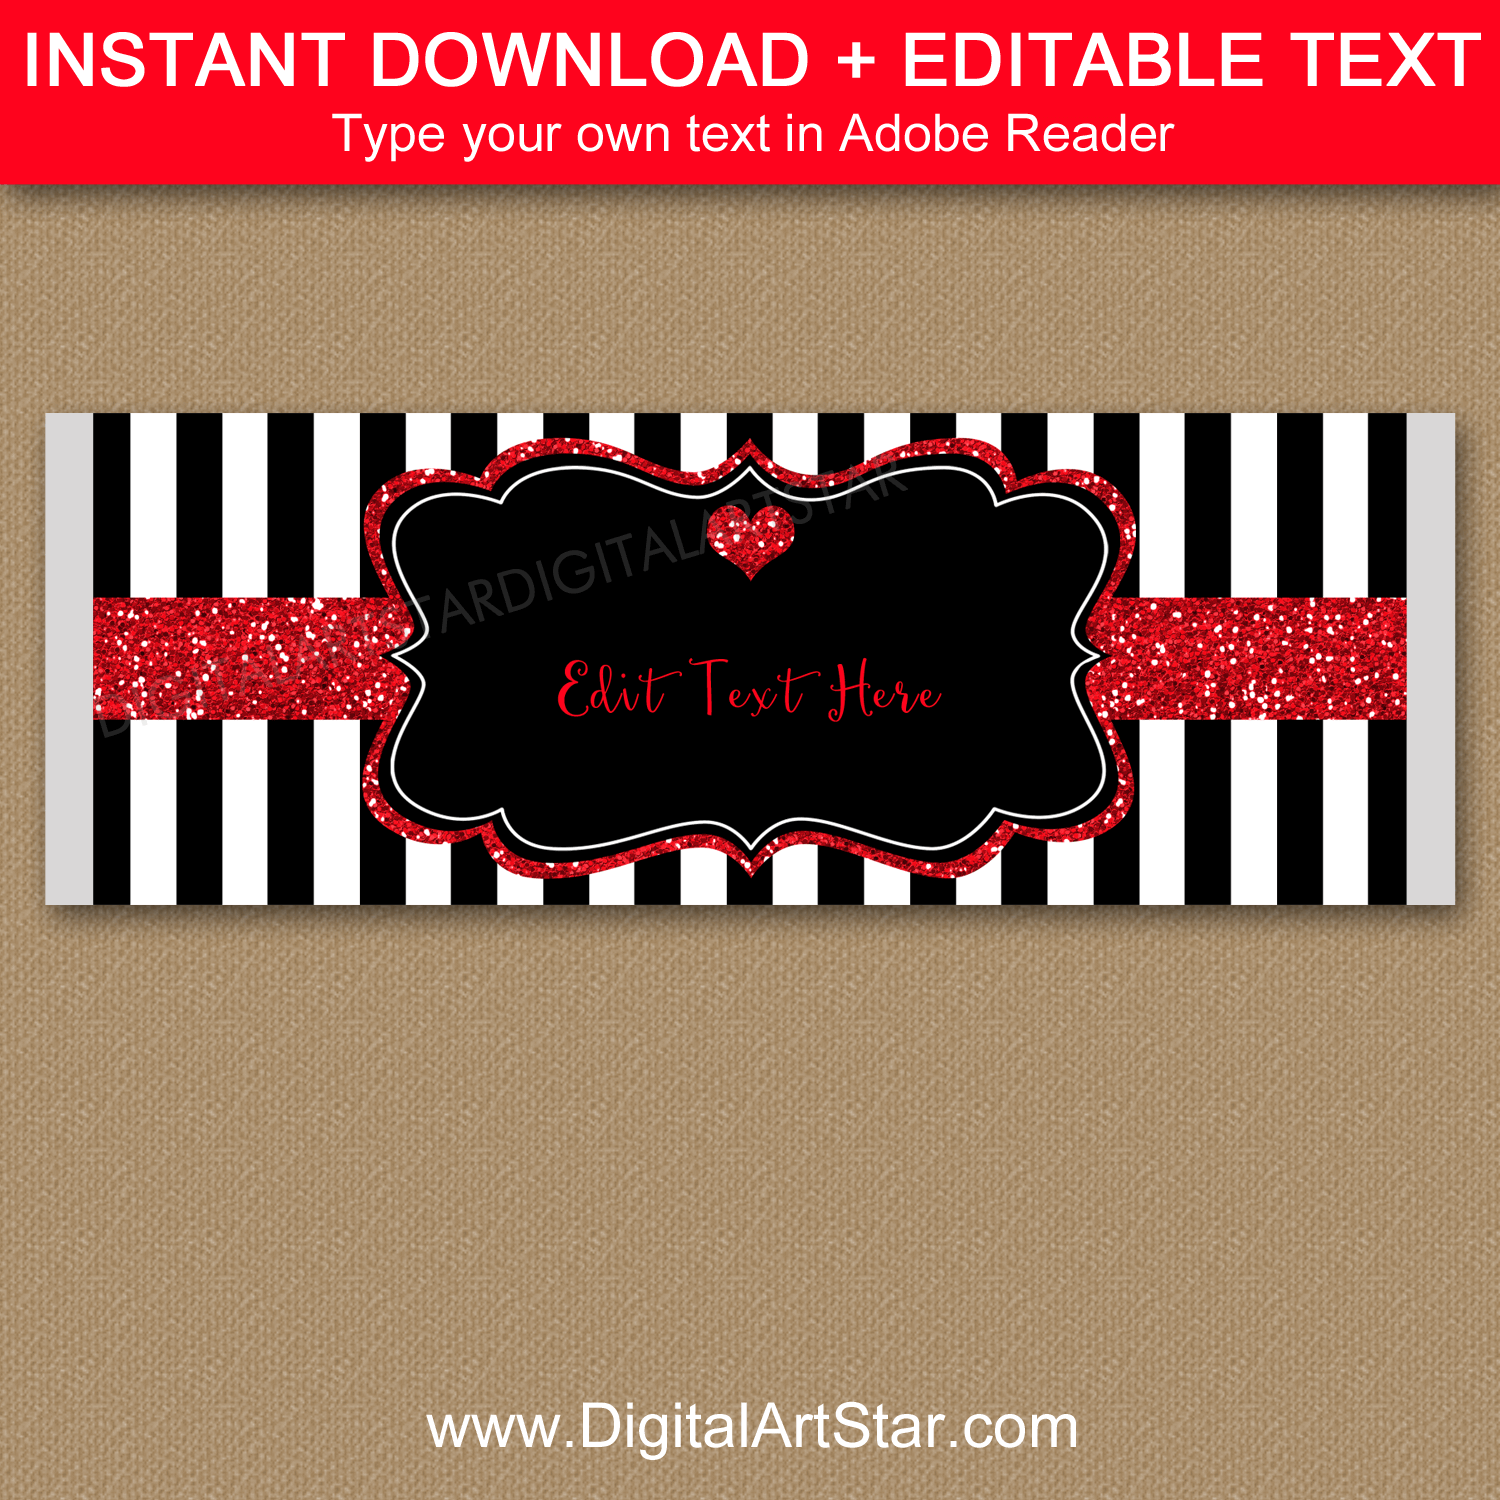 Black and White Candy Bar Wrappers with Red Glitter Accents